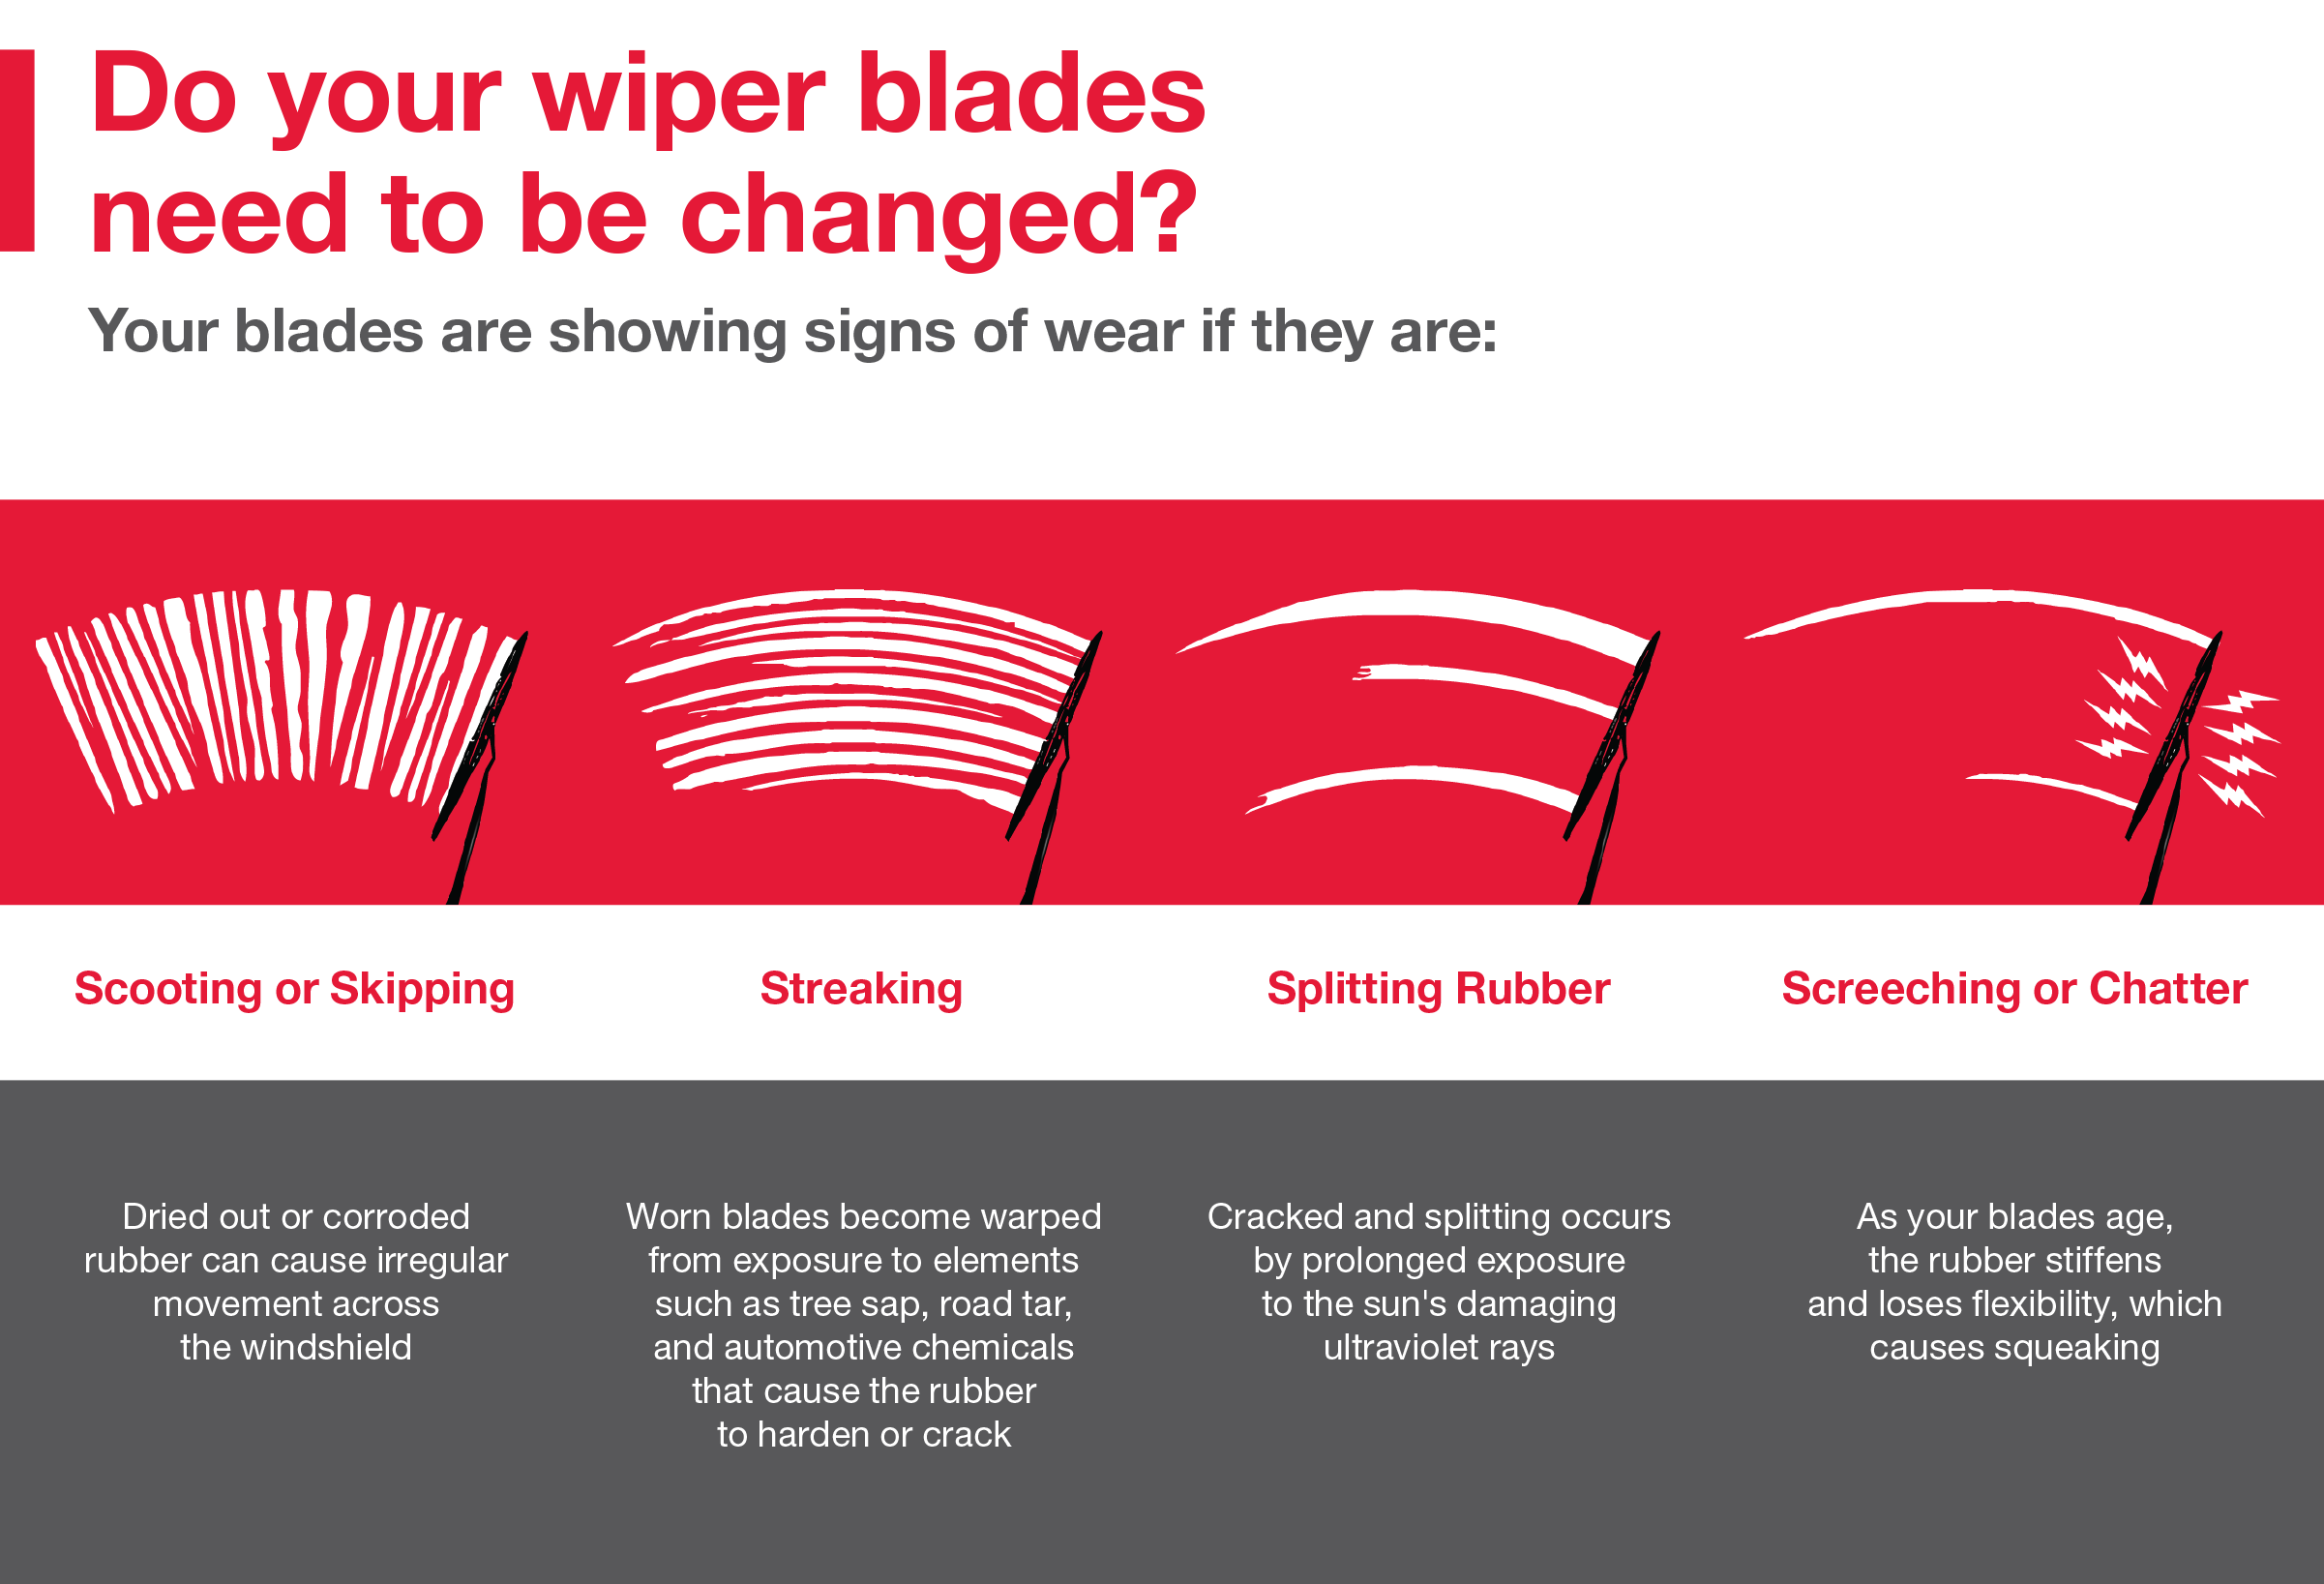 Do your wiper blades need to be changed? Call your local dealer for more info: (970) 249-6691